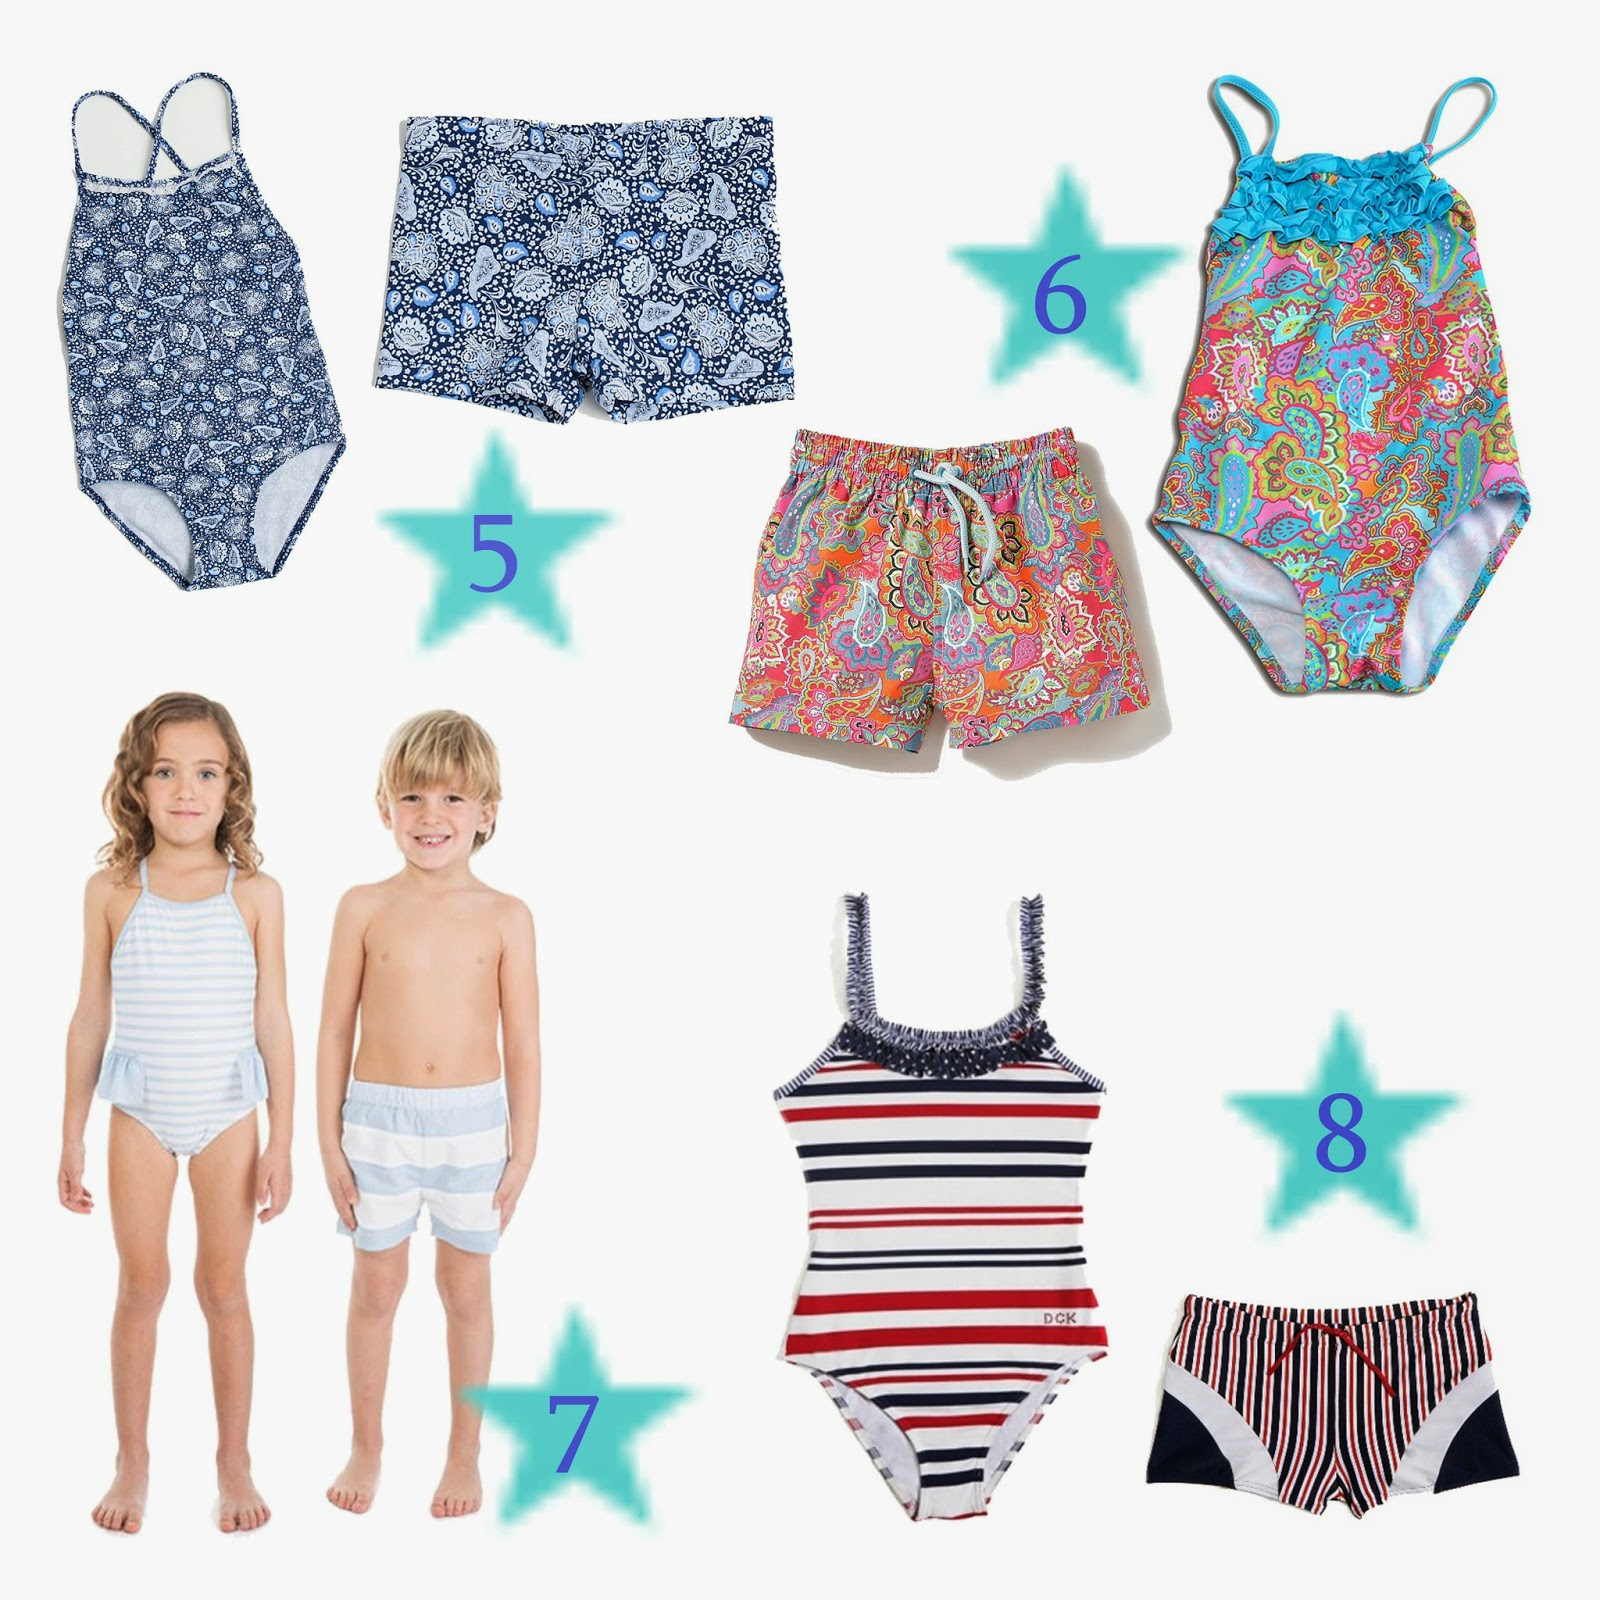 photo-kids-swimsuits-bañadores-2014-zara-byb-gocco-dolores_cortes